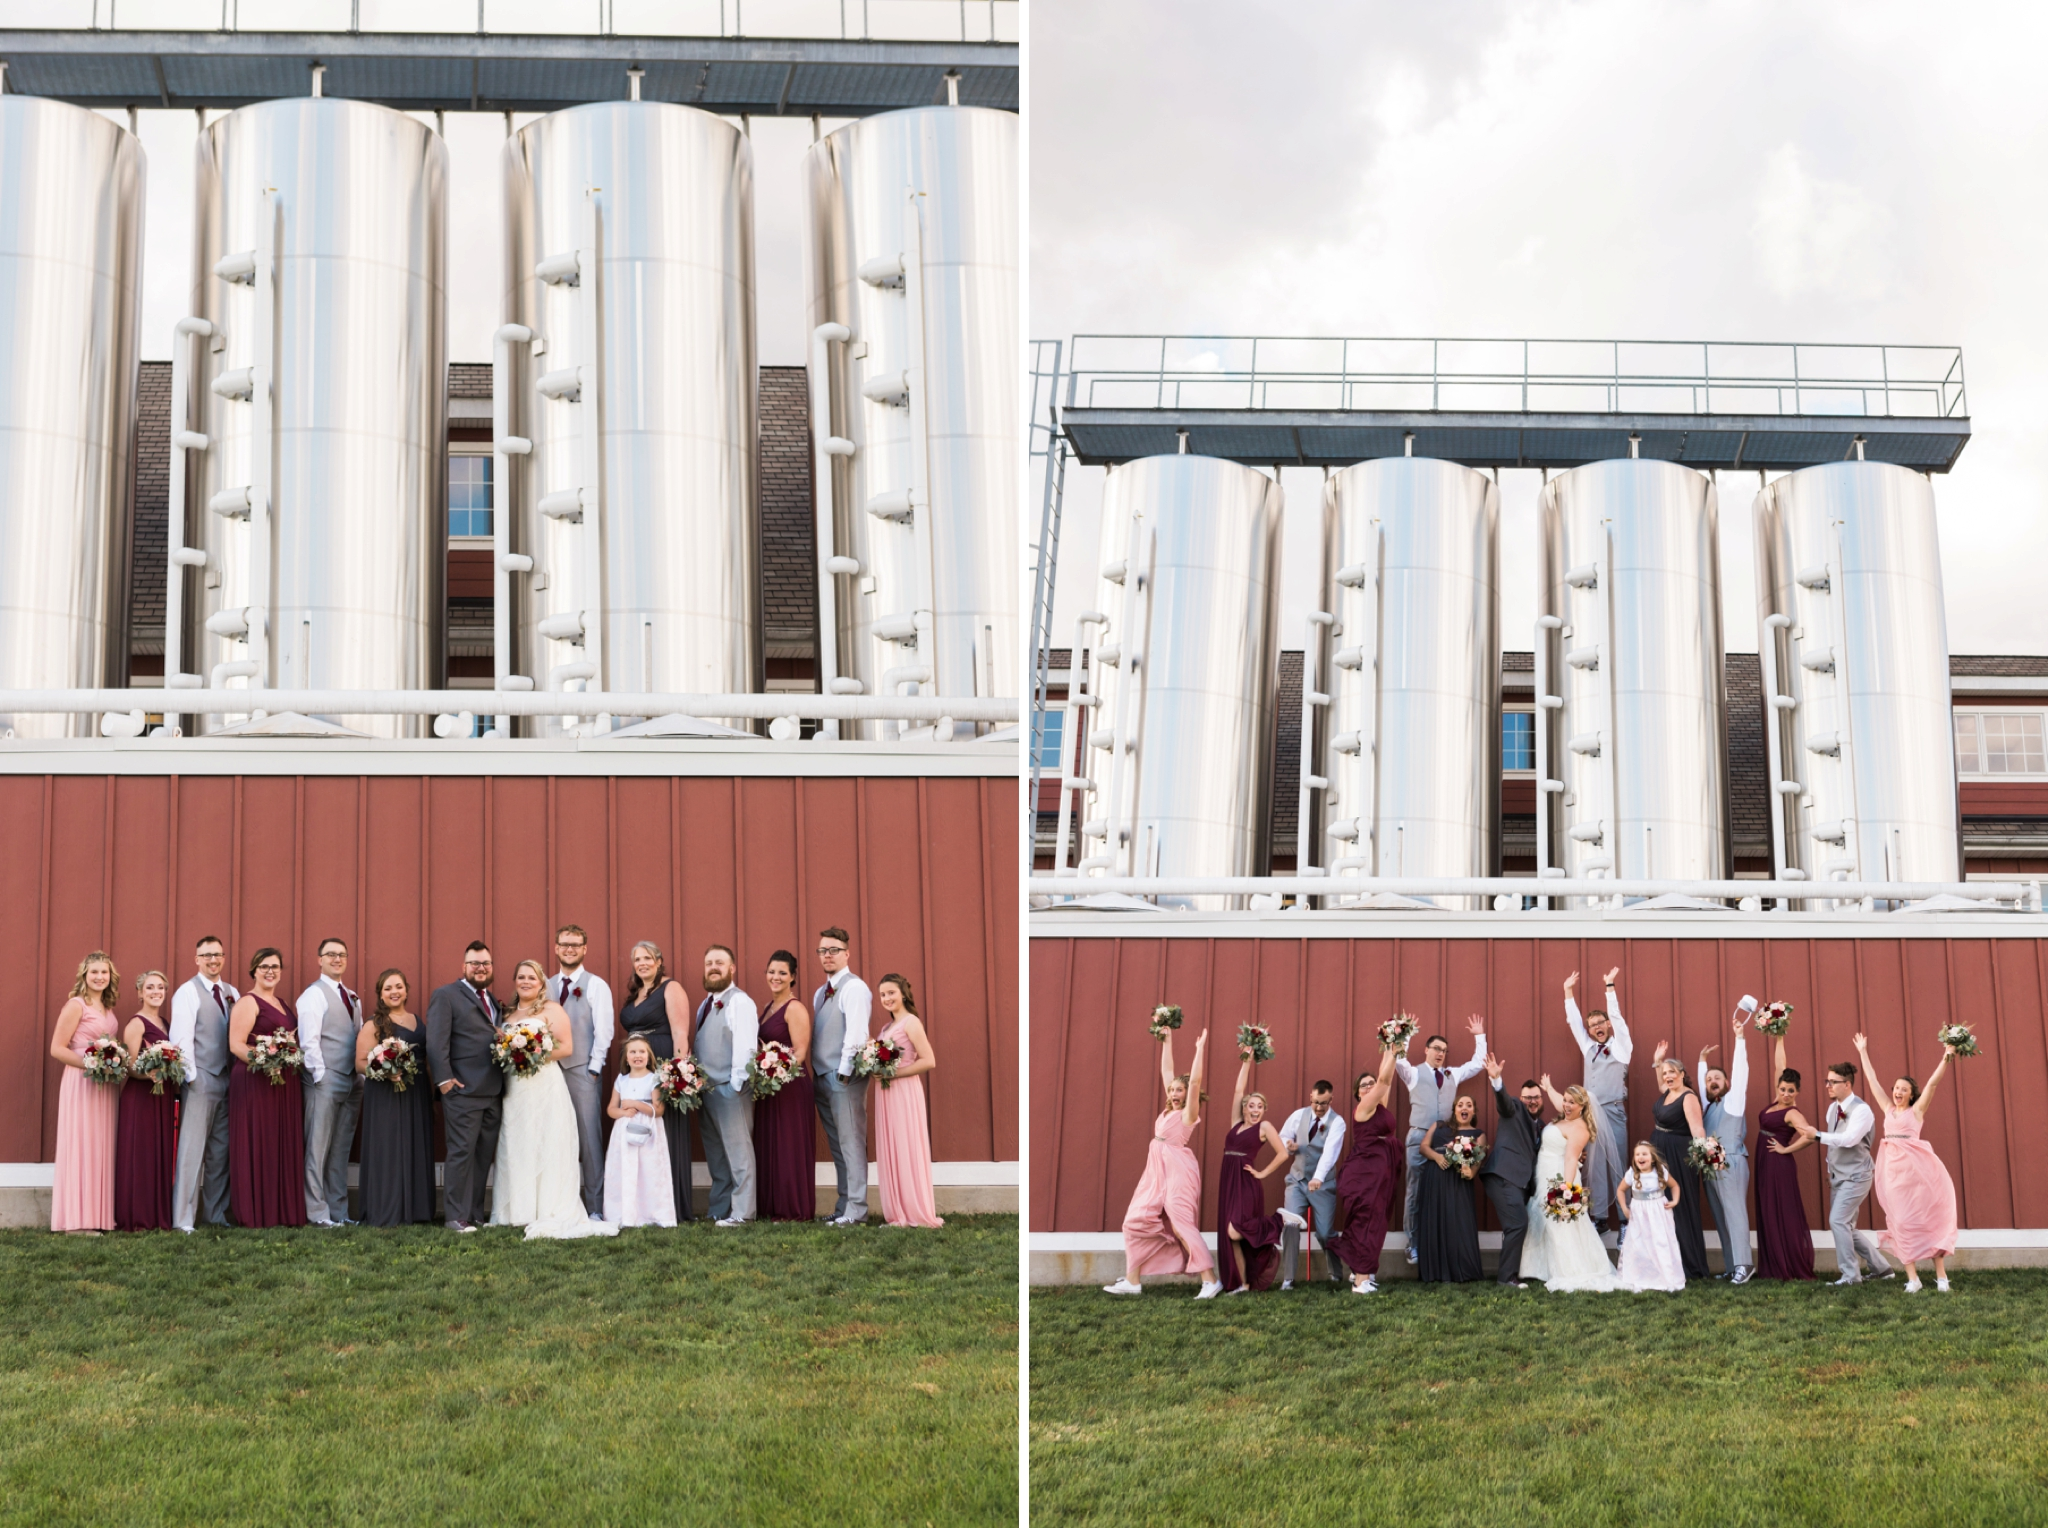 Emily Grace Photography, York PA Wedding Photographer, Wyndridge Farm Wedding, Wyndridge Farm Craft Cider